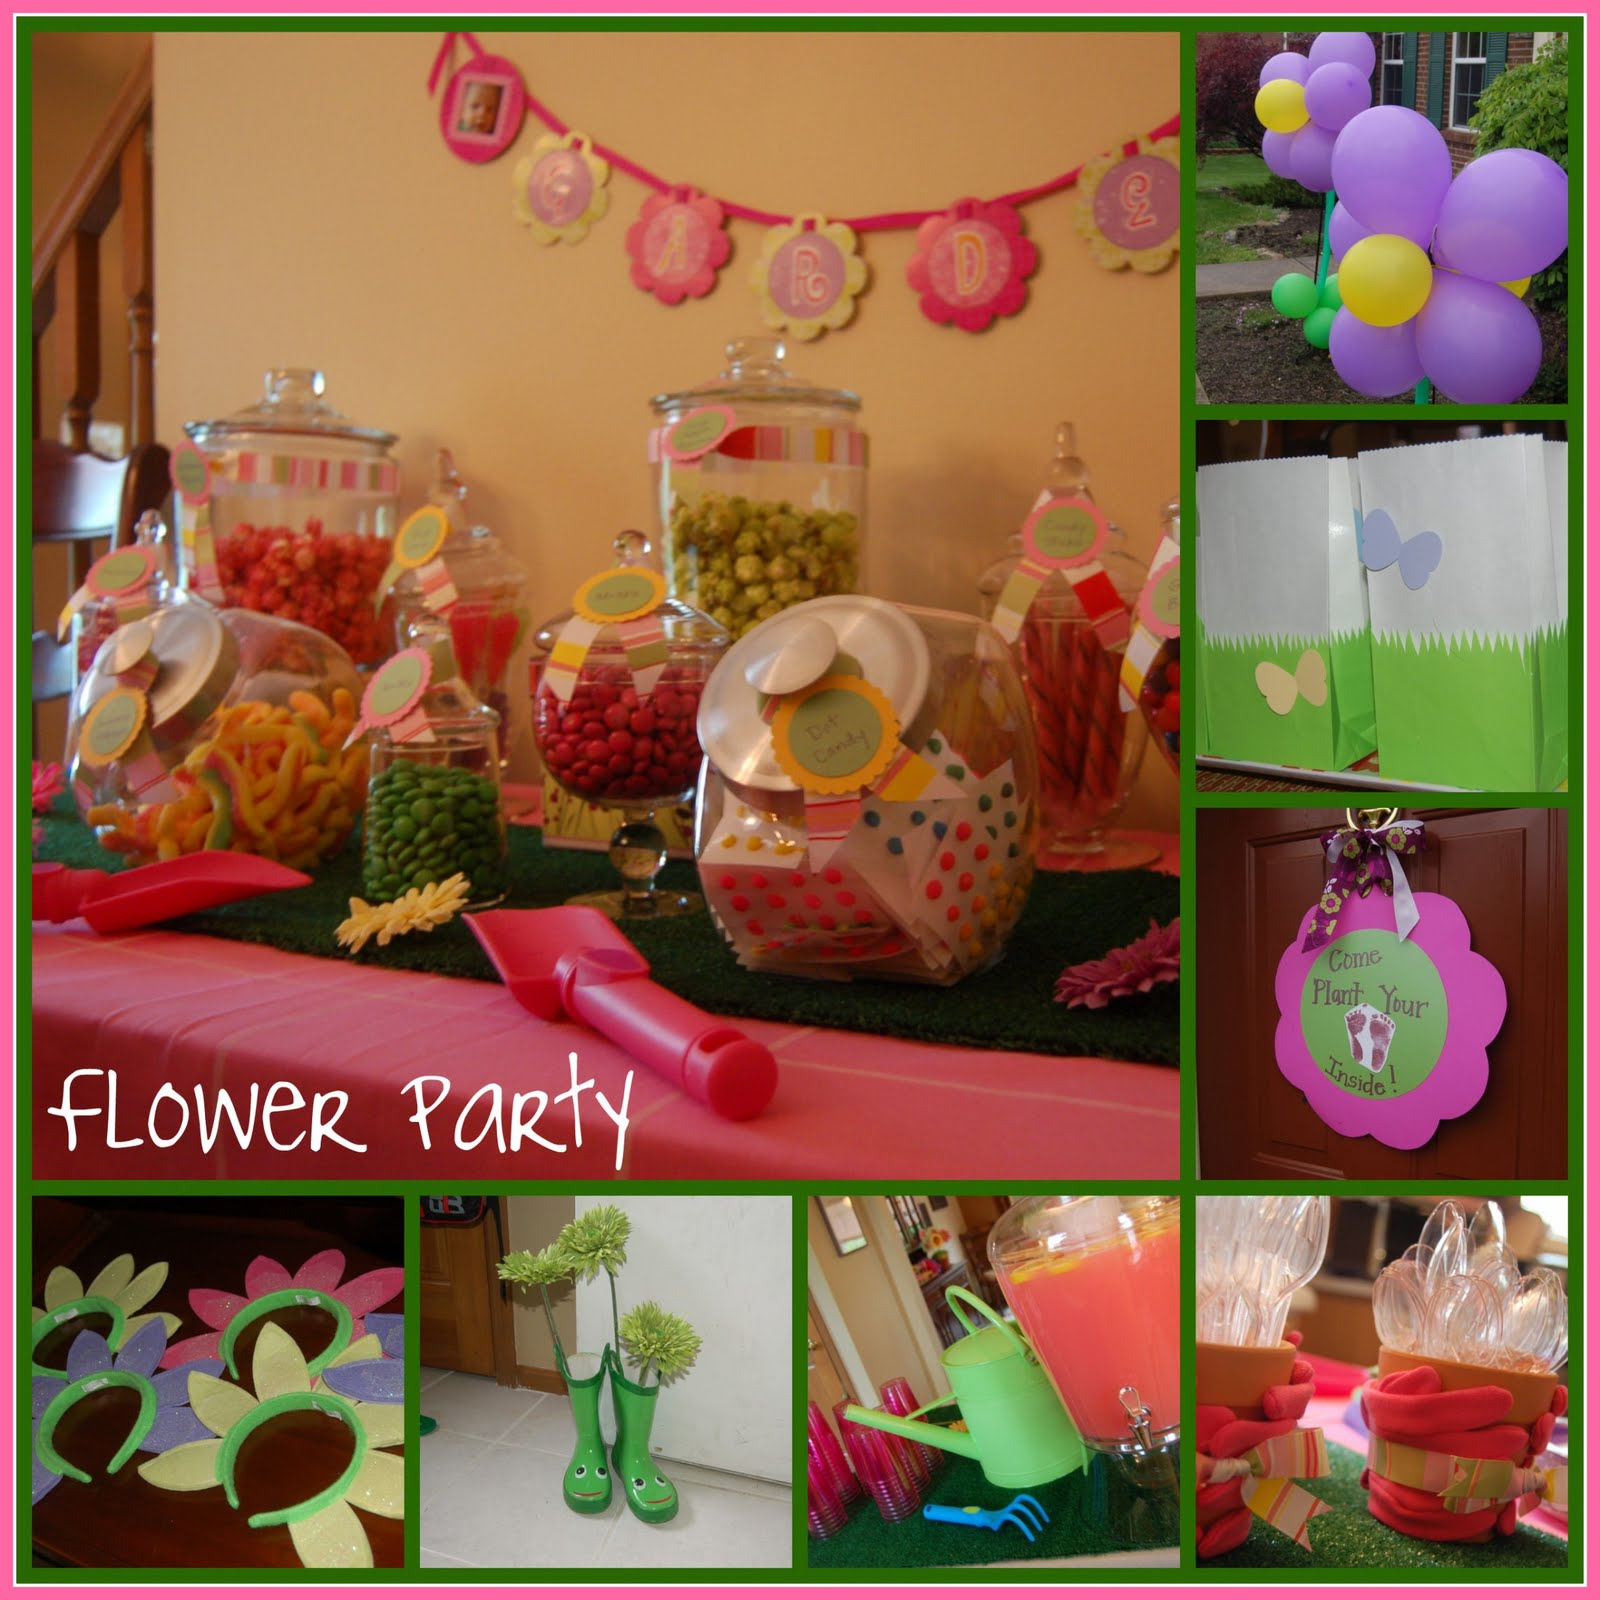 Parties Decor & More: Flower Birthday Party